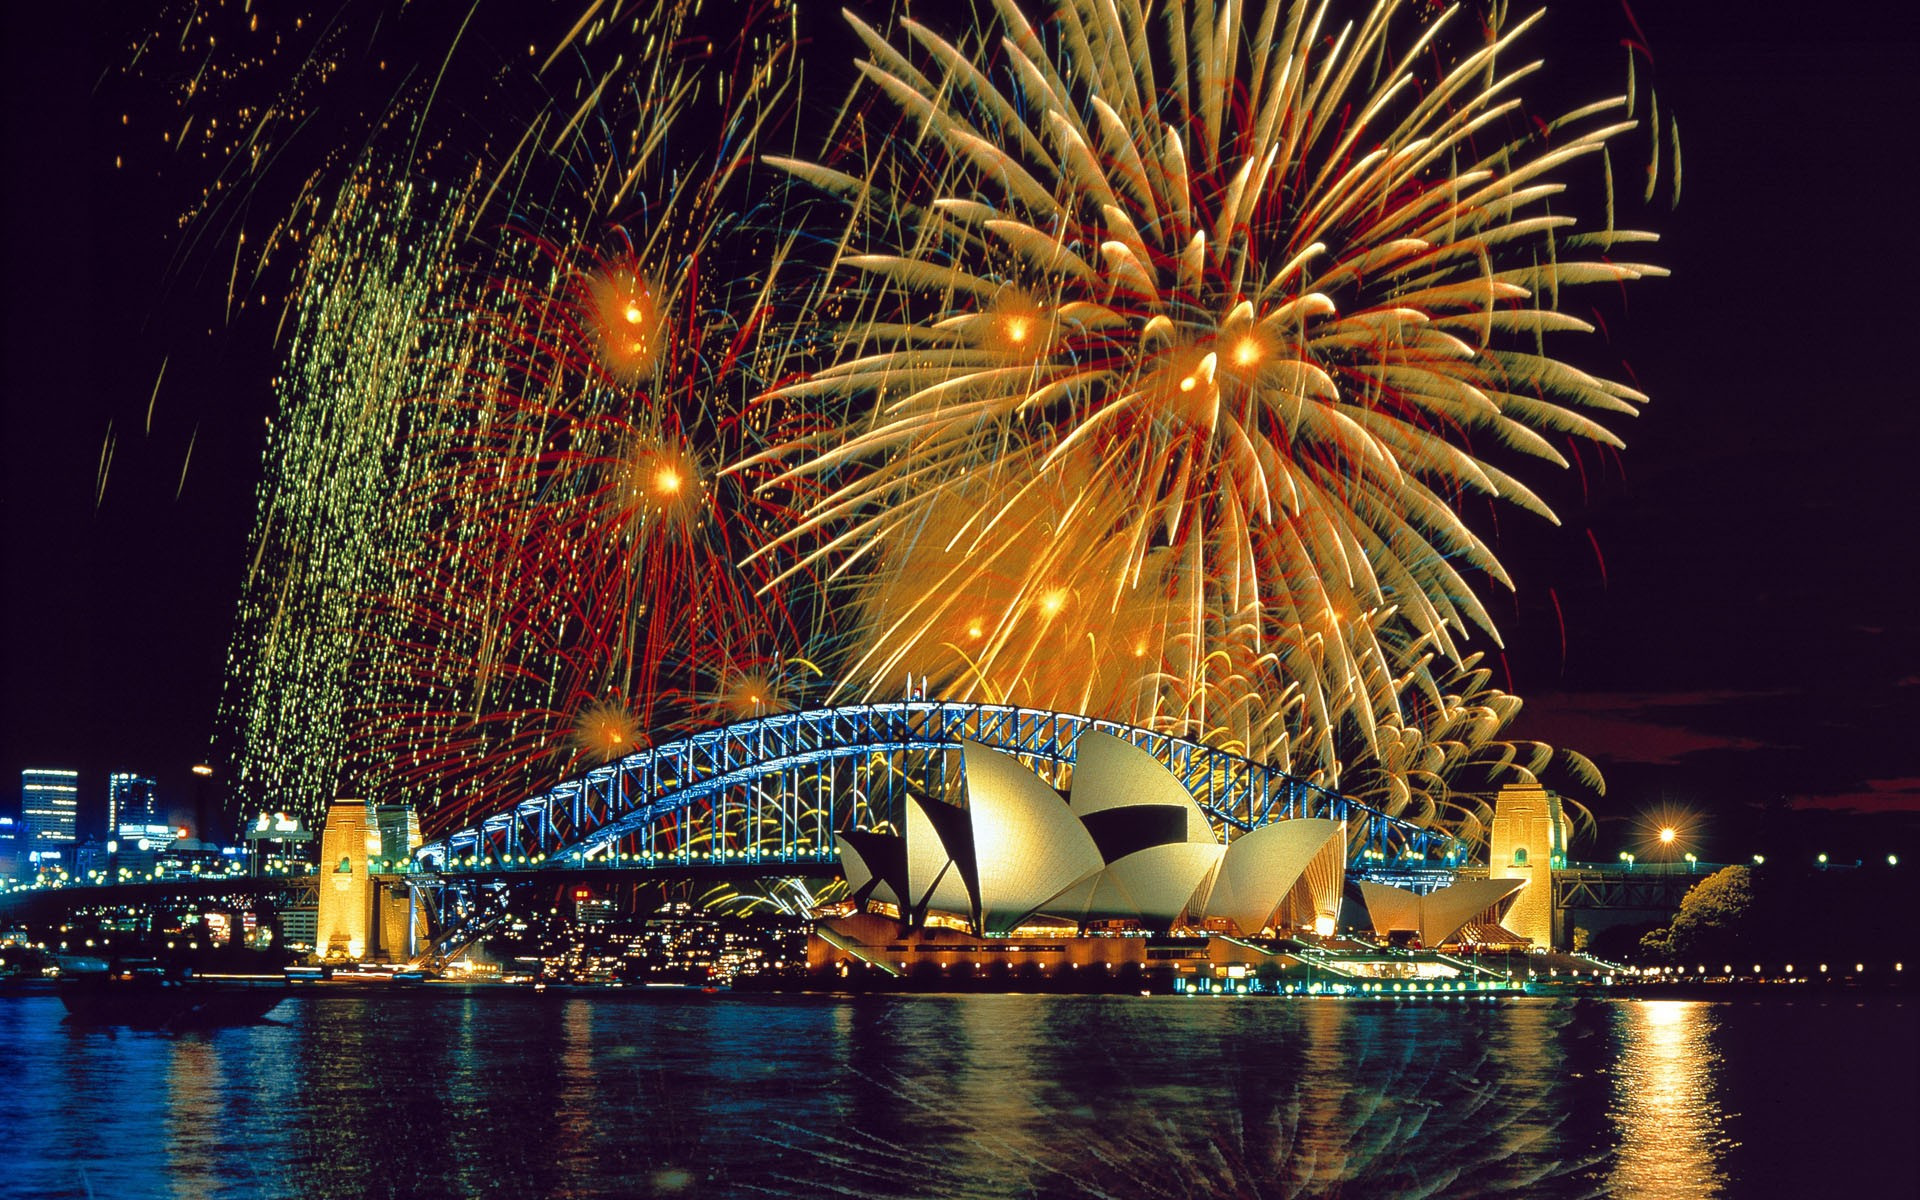 Fireworks at the Sydney Opera House wallpaper   606011 1920x1200